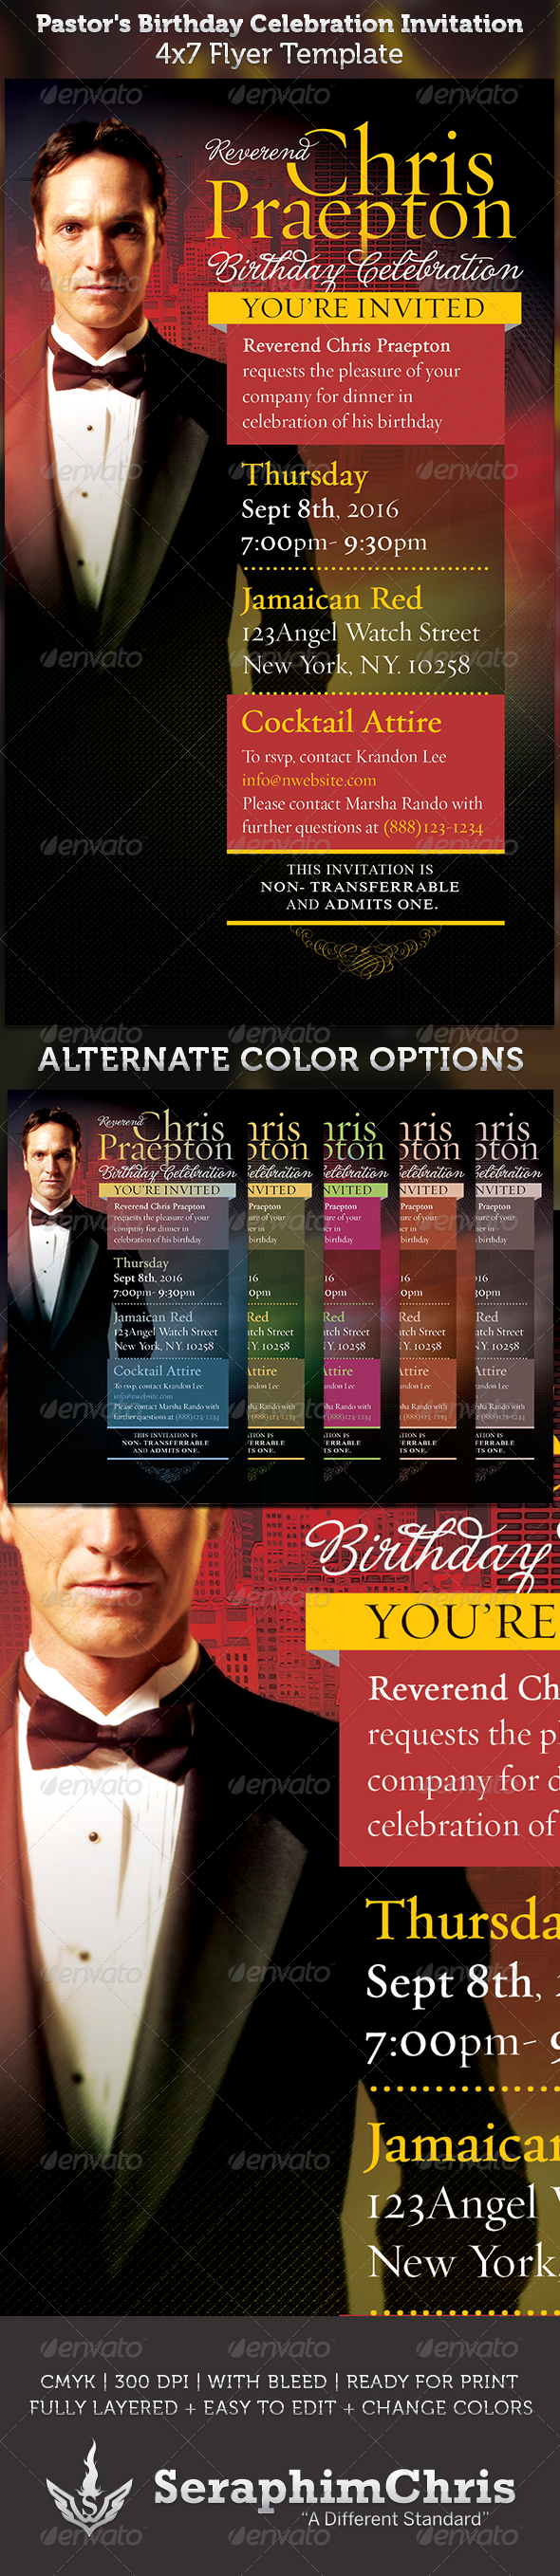 pastor s birthday celebration invitation template flyer template buy pastor s birthday celebration invitation template by seraphimchris on graphicriver this pastor s birthday celebration invite or flyer template is